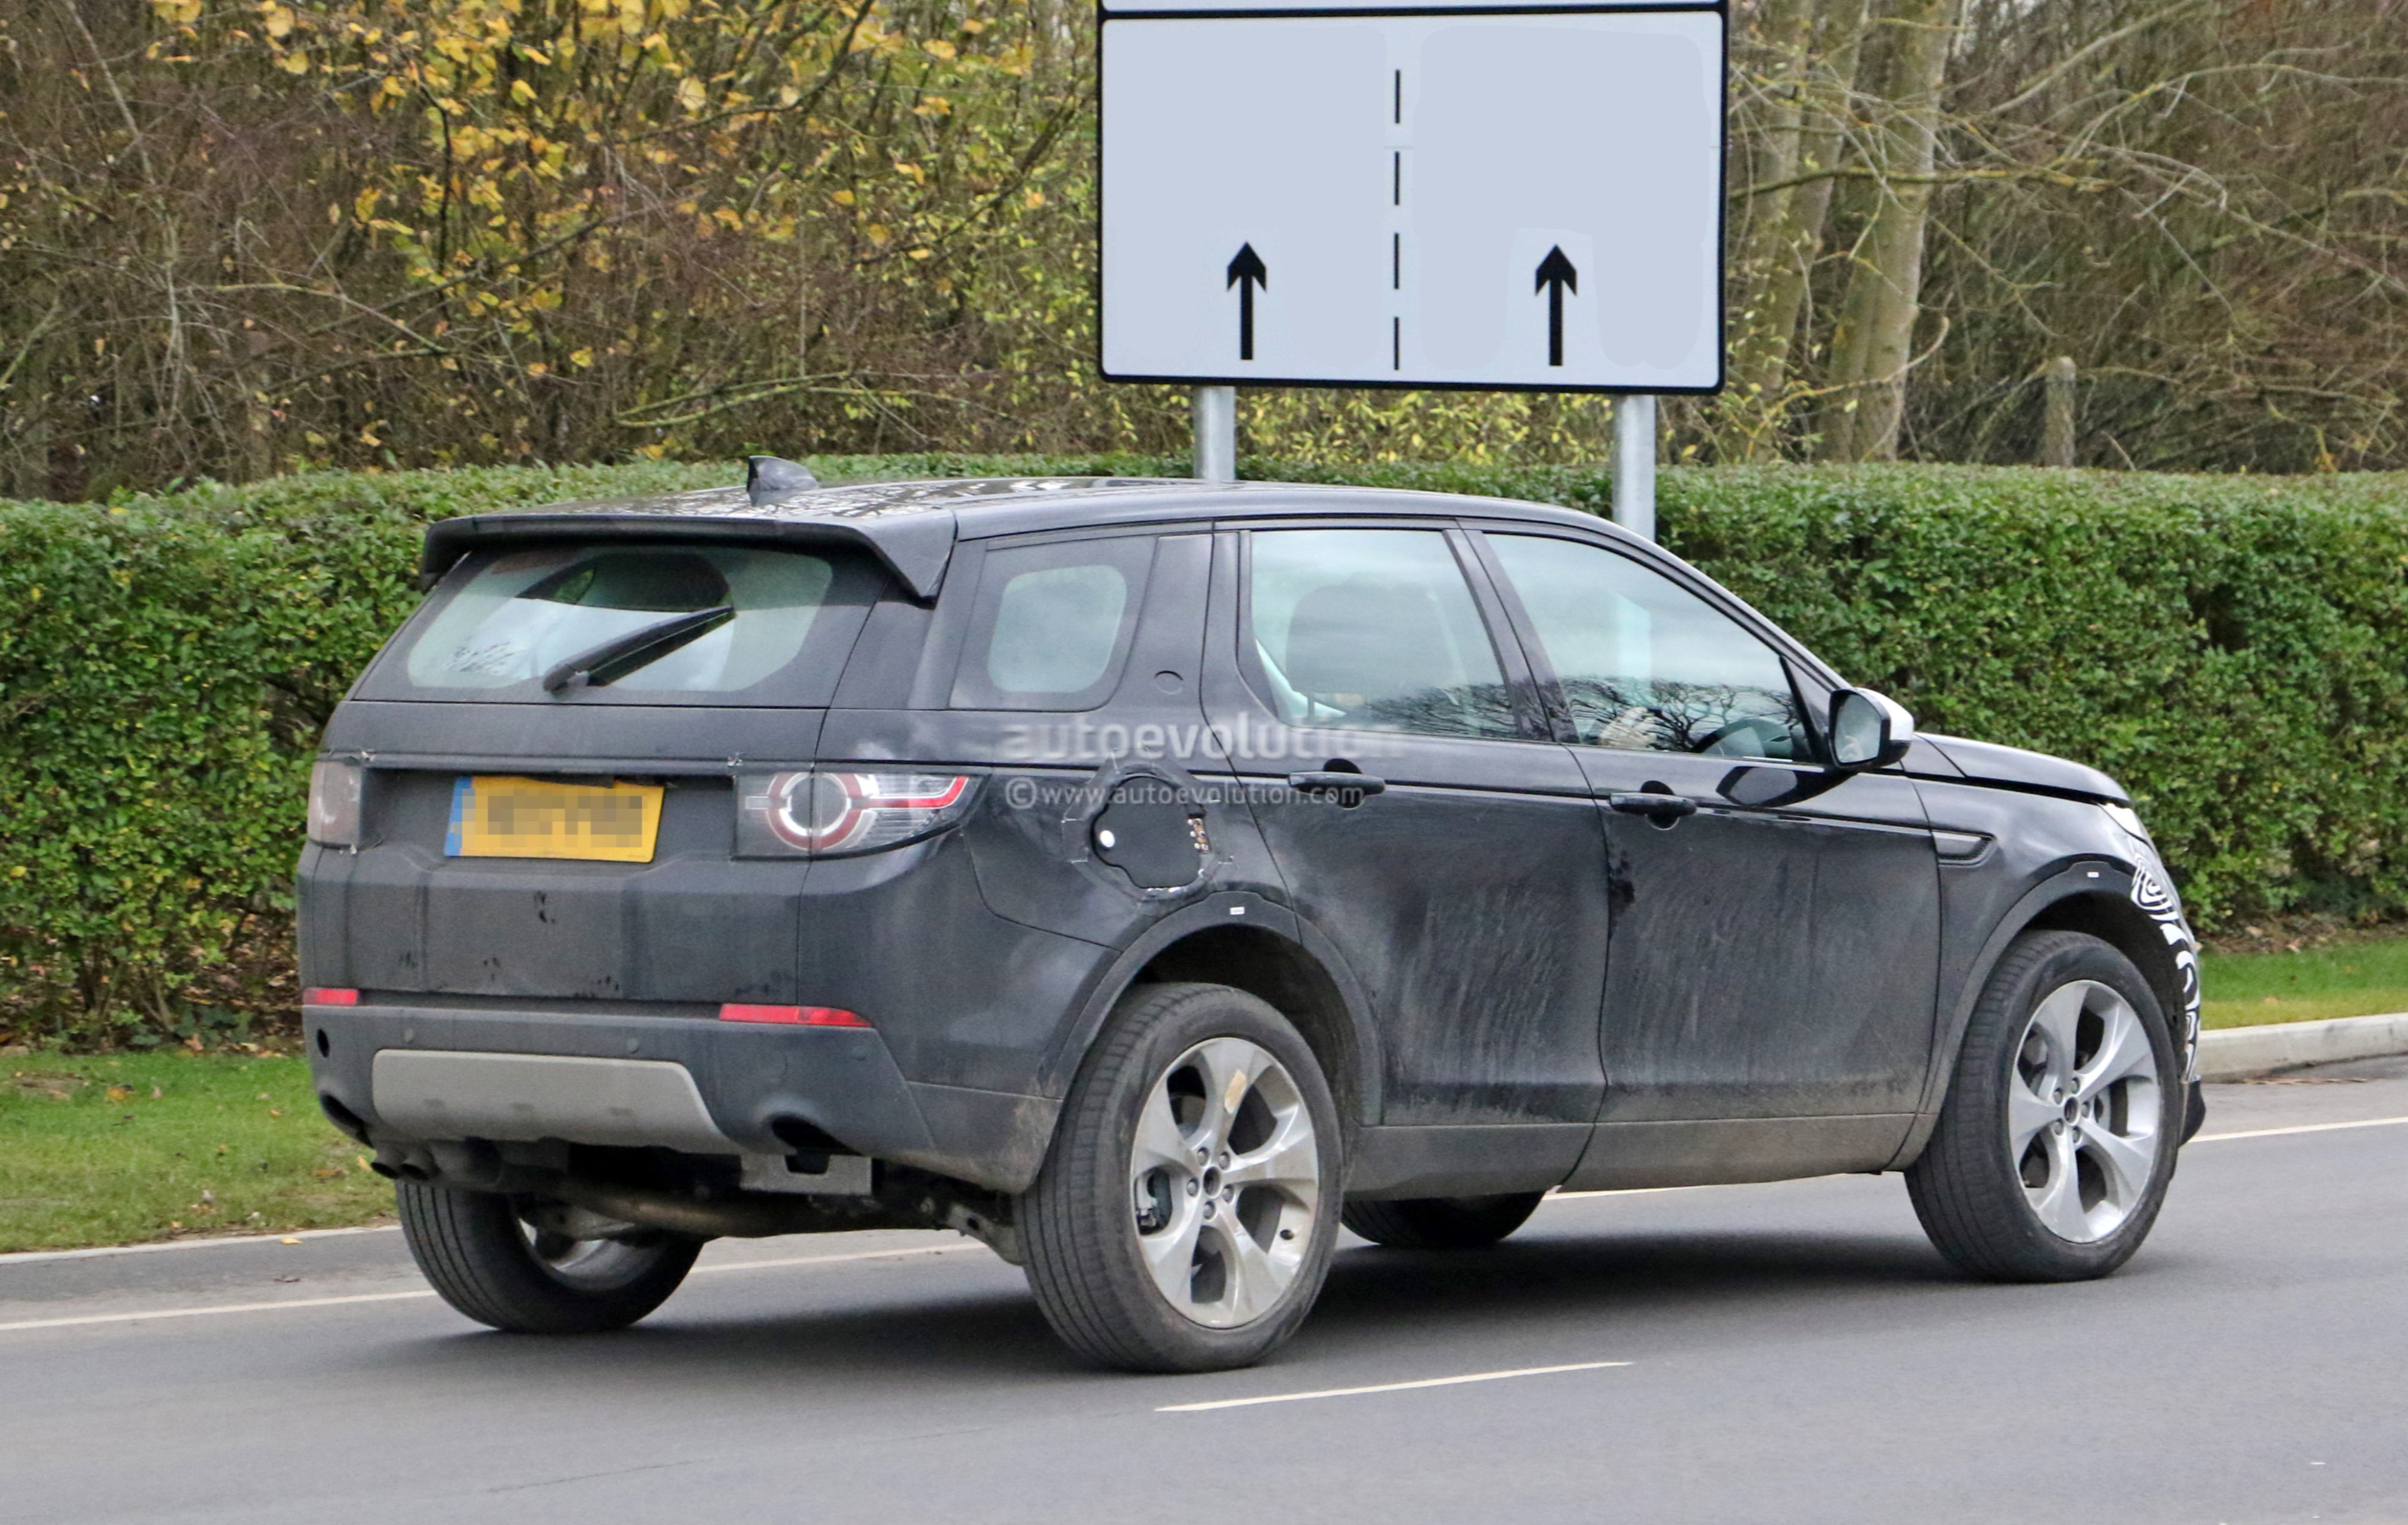 Spyshots: 2019 Land Rover Discovery Sport Has Makeshift Fuel Filler ...